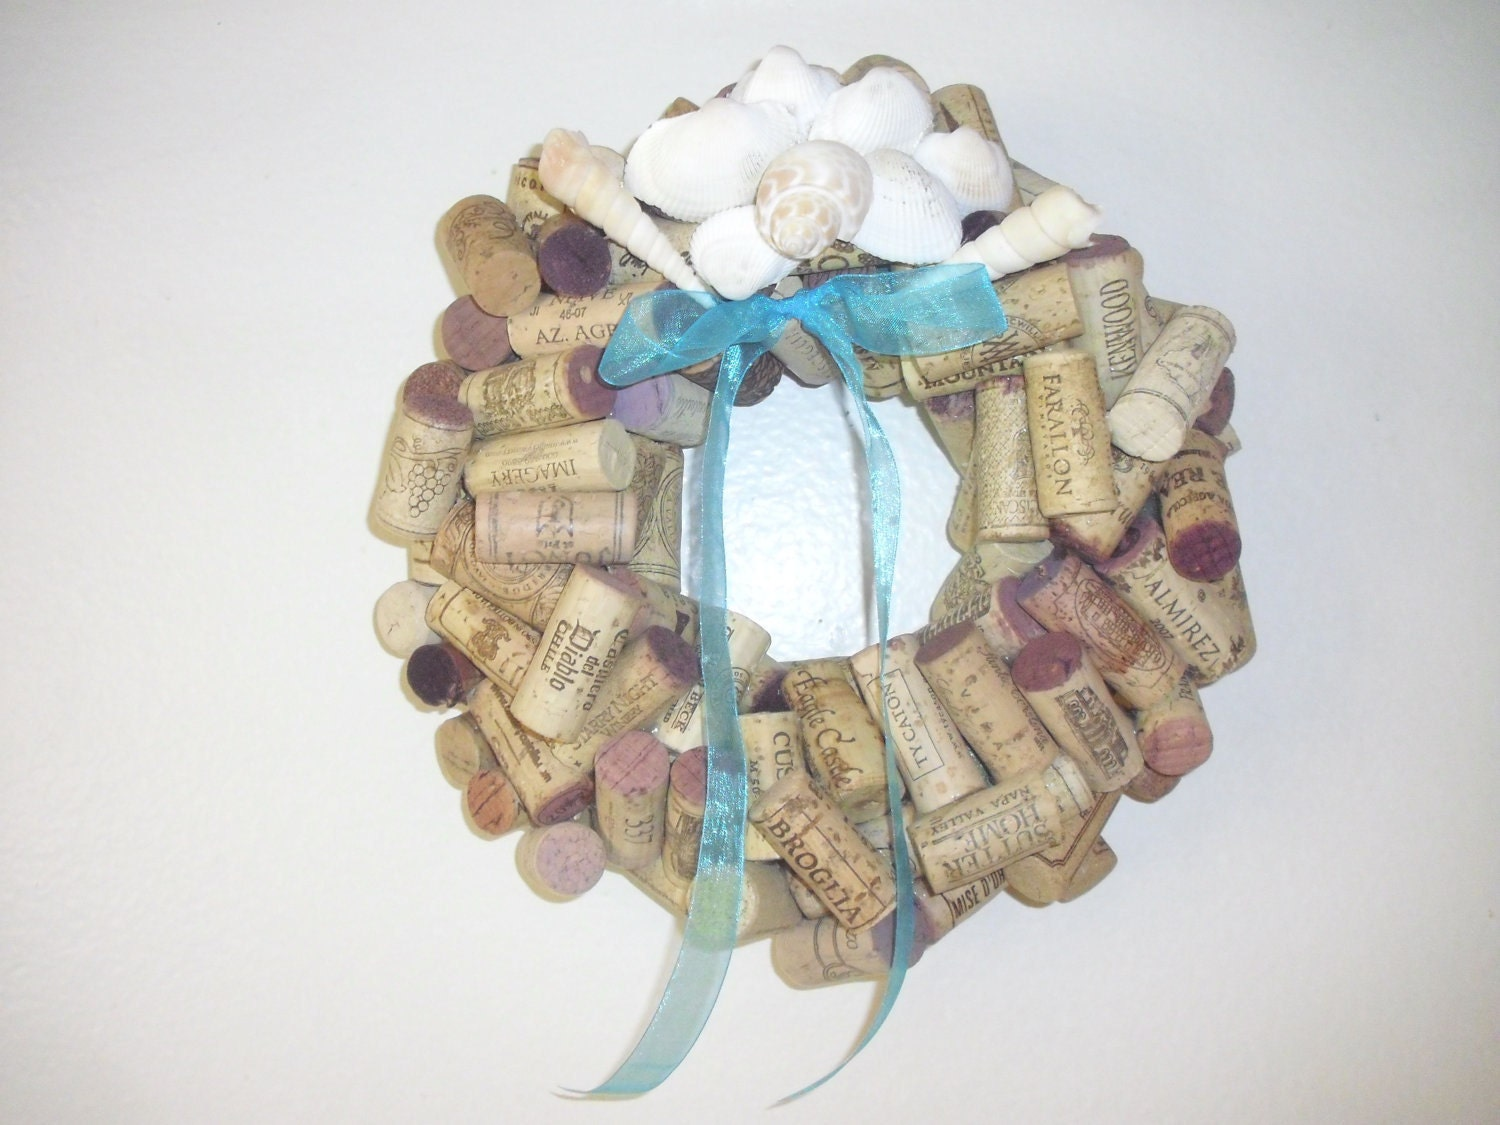 Wine cork wreath with seashells by winecountrycrafters on etsy